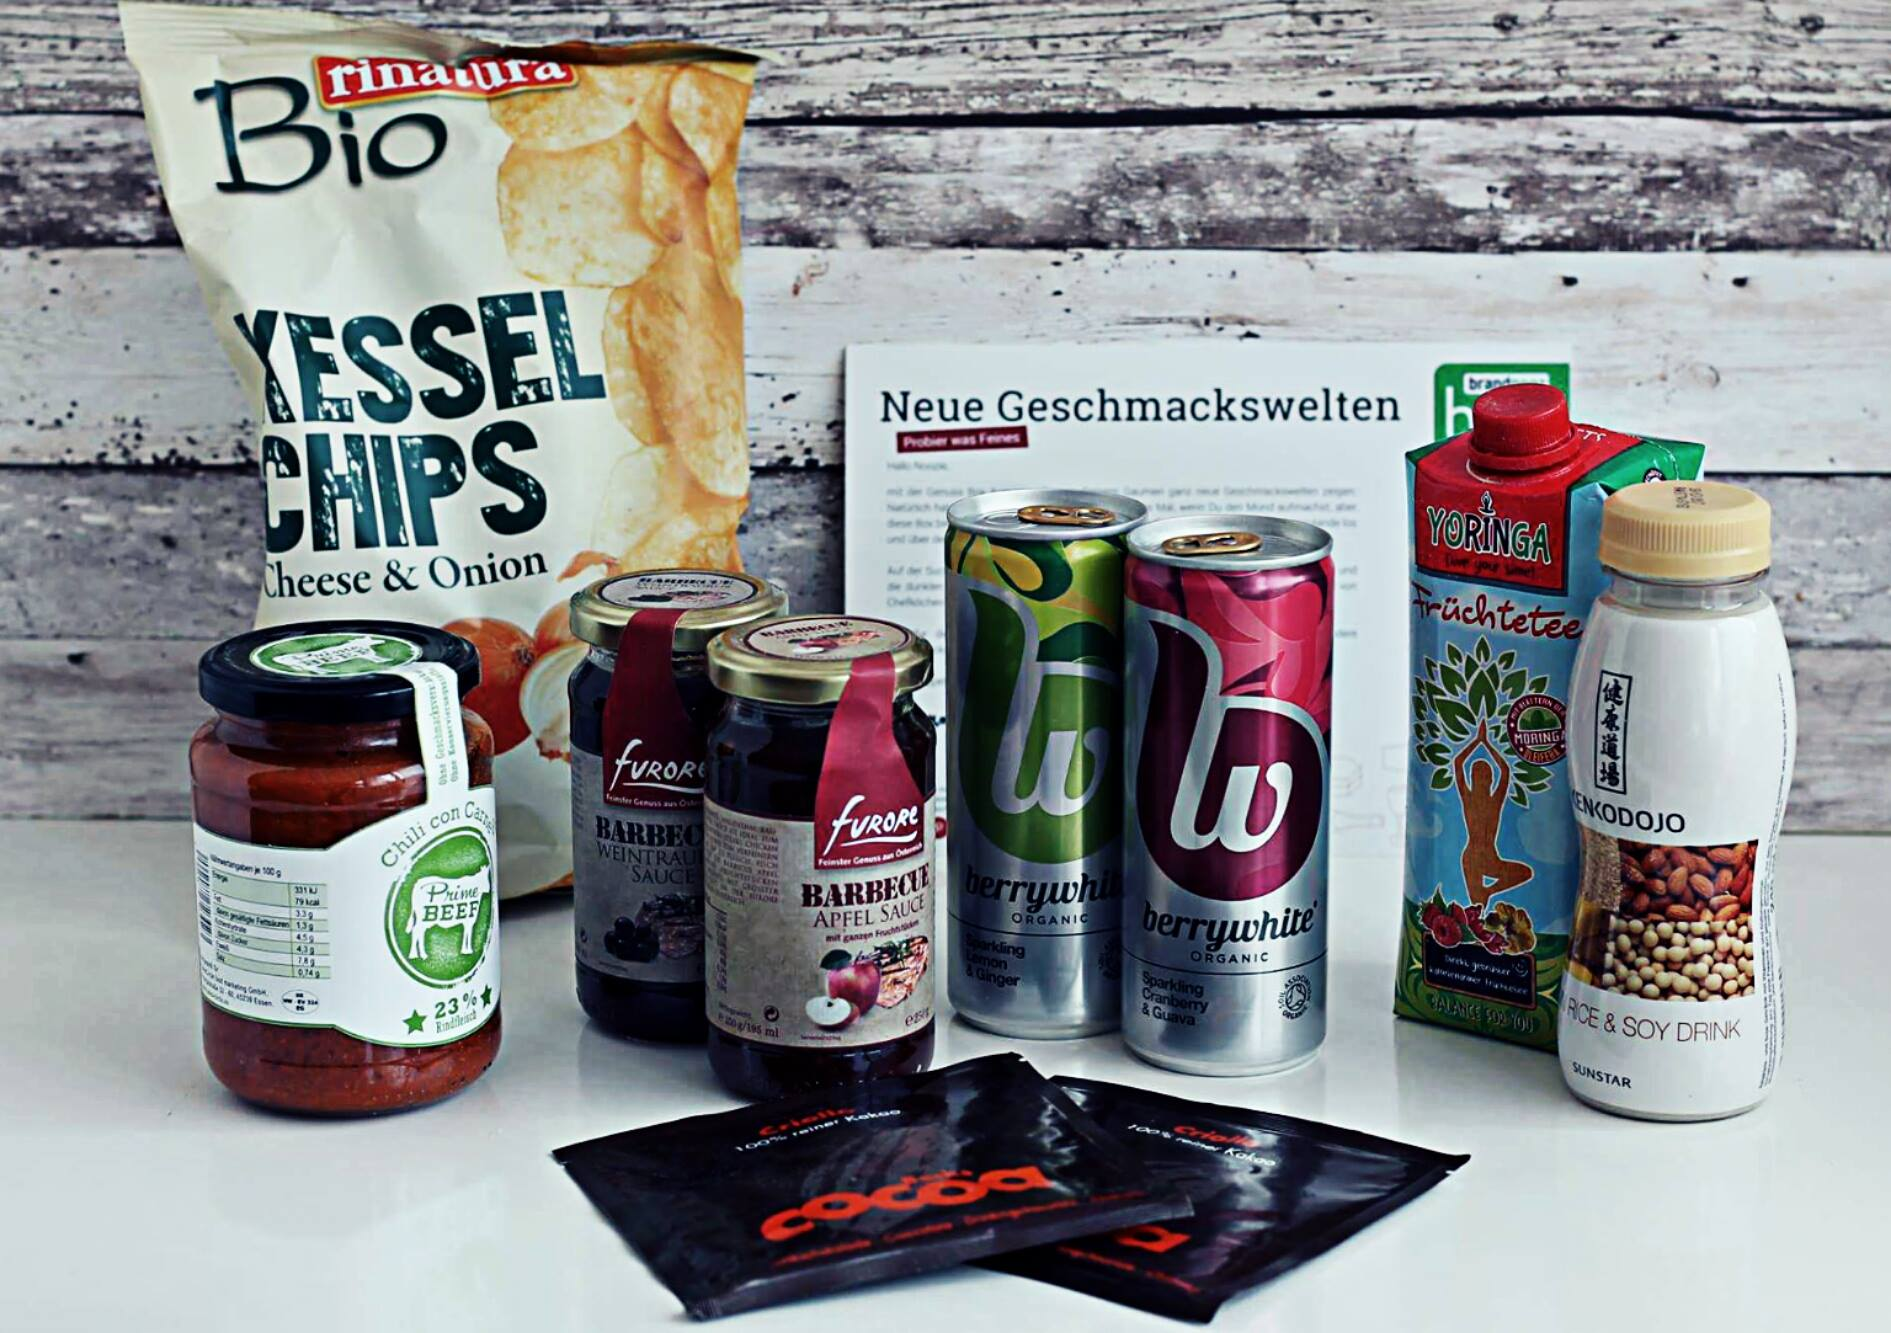 Genussbox August 2016 brandnoozbox lebensmittel foodblog boxen